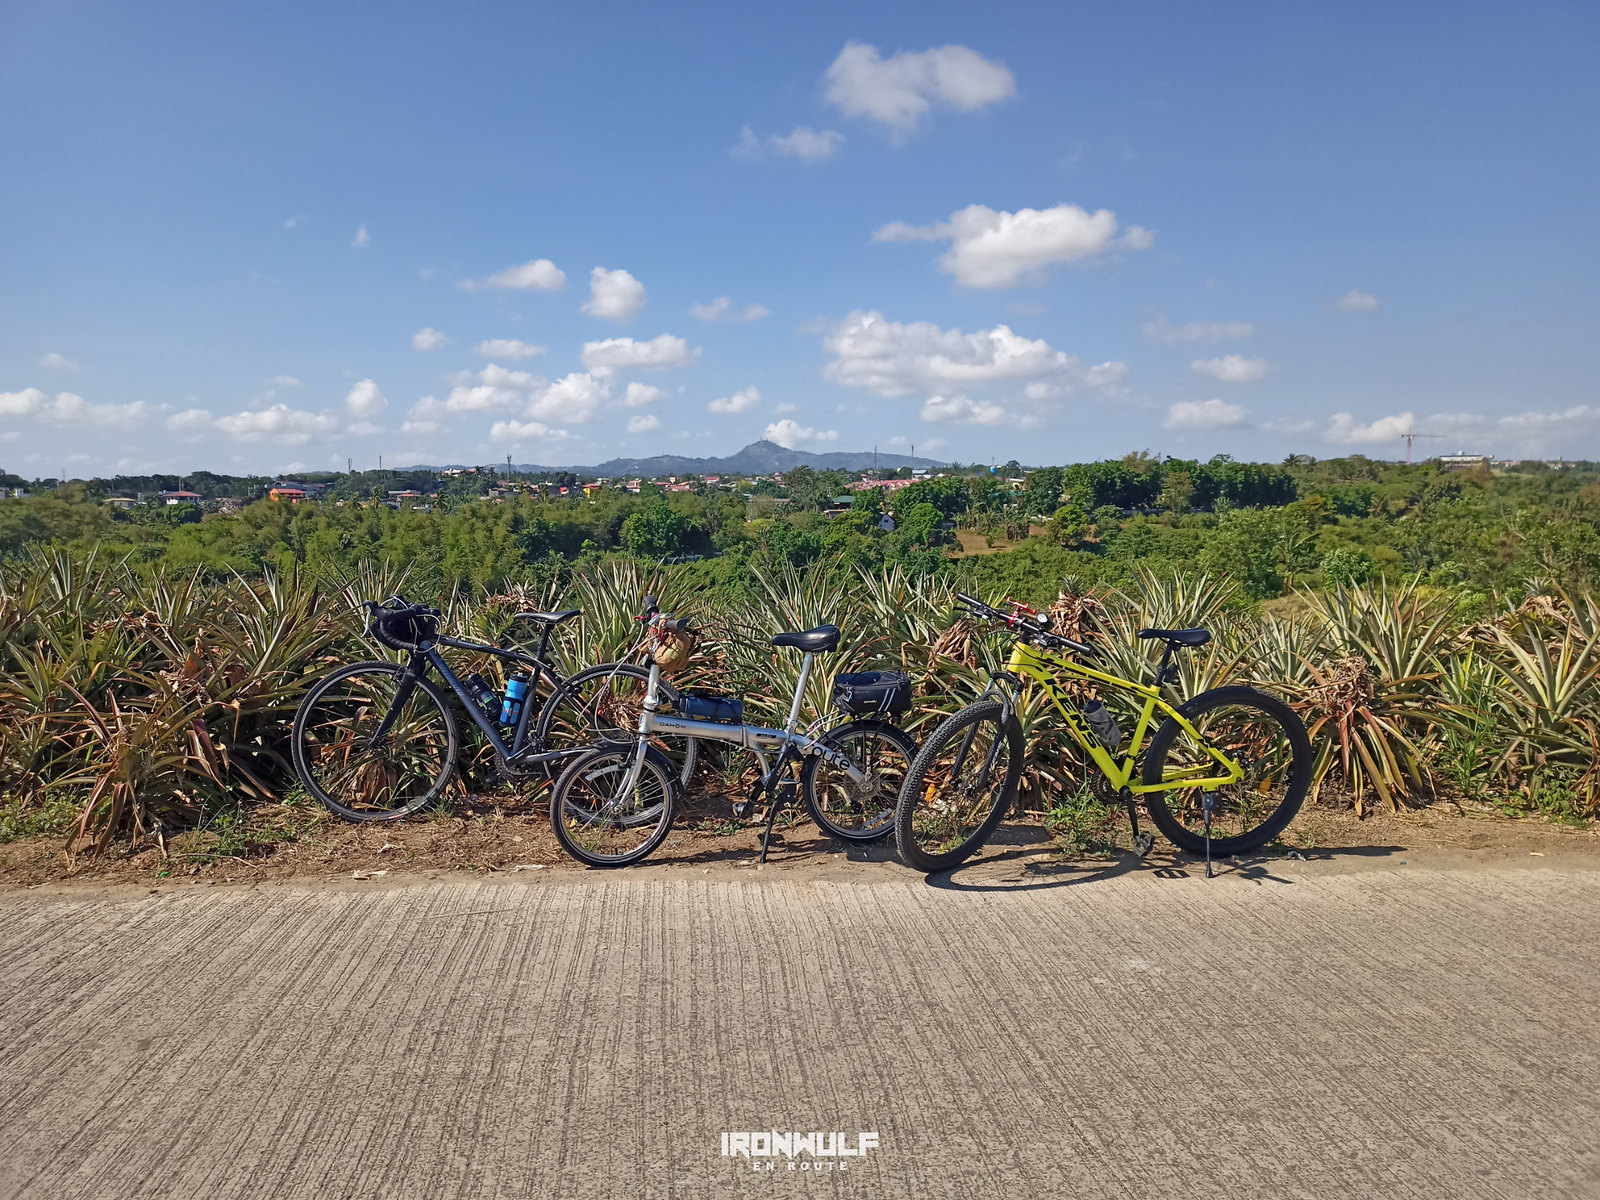 Riding with friends at Silang, Cavite